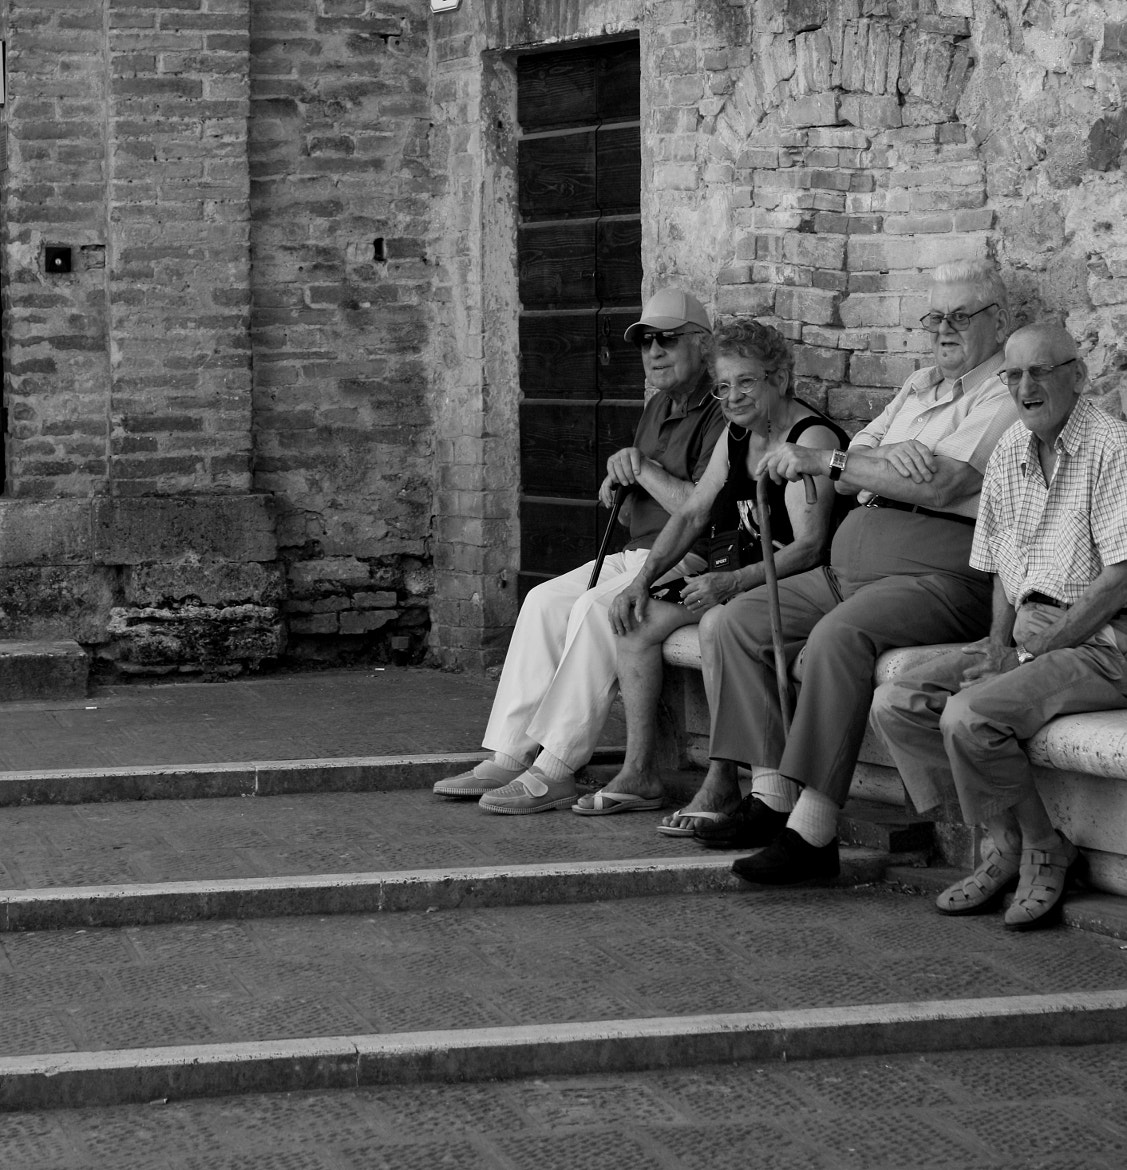 Photograph Old Italian People by Alexandra Paredes on 500px